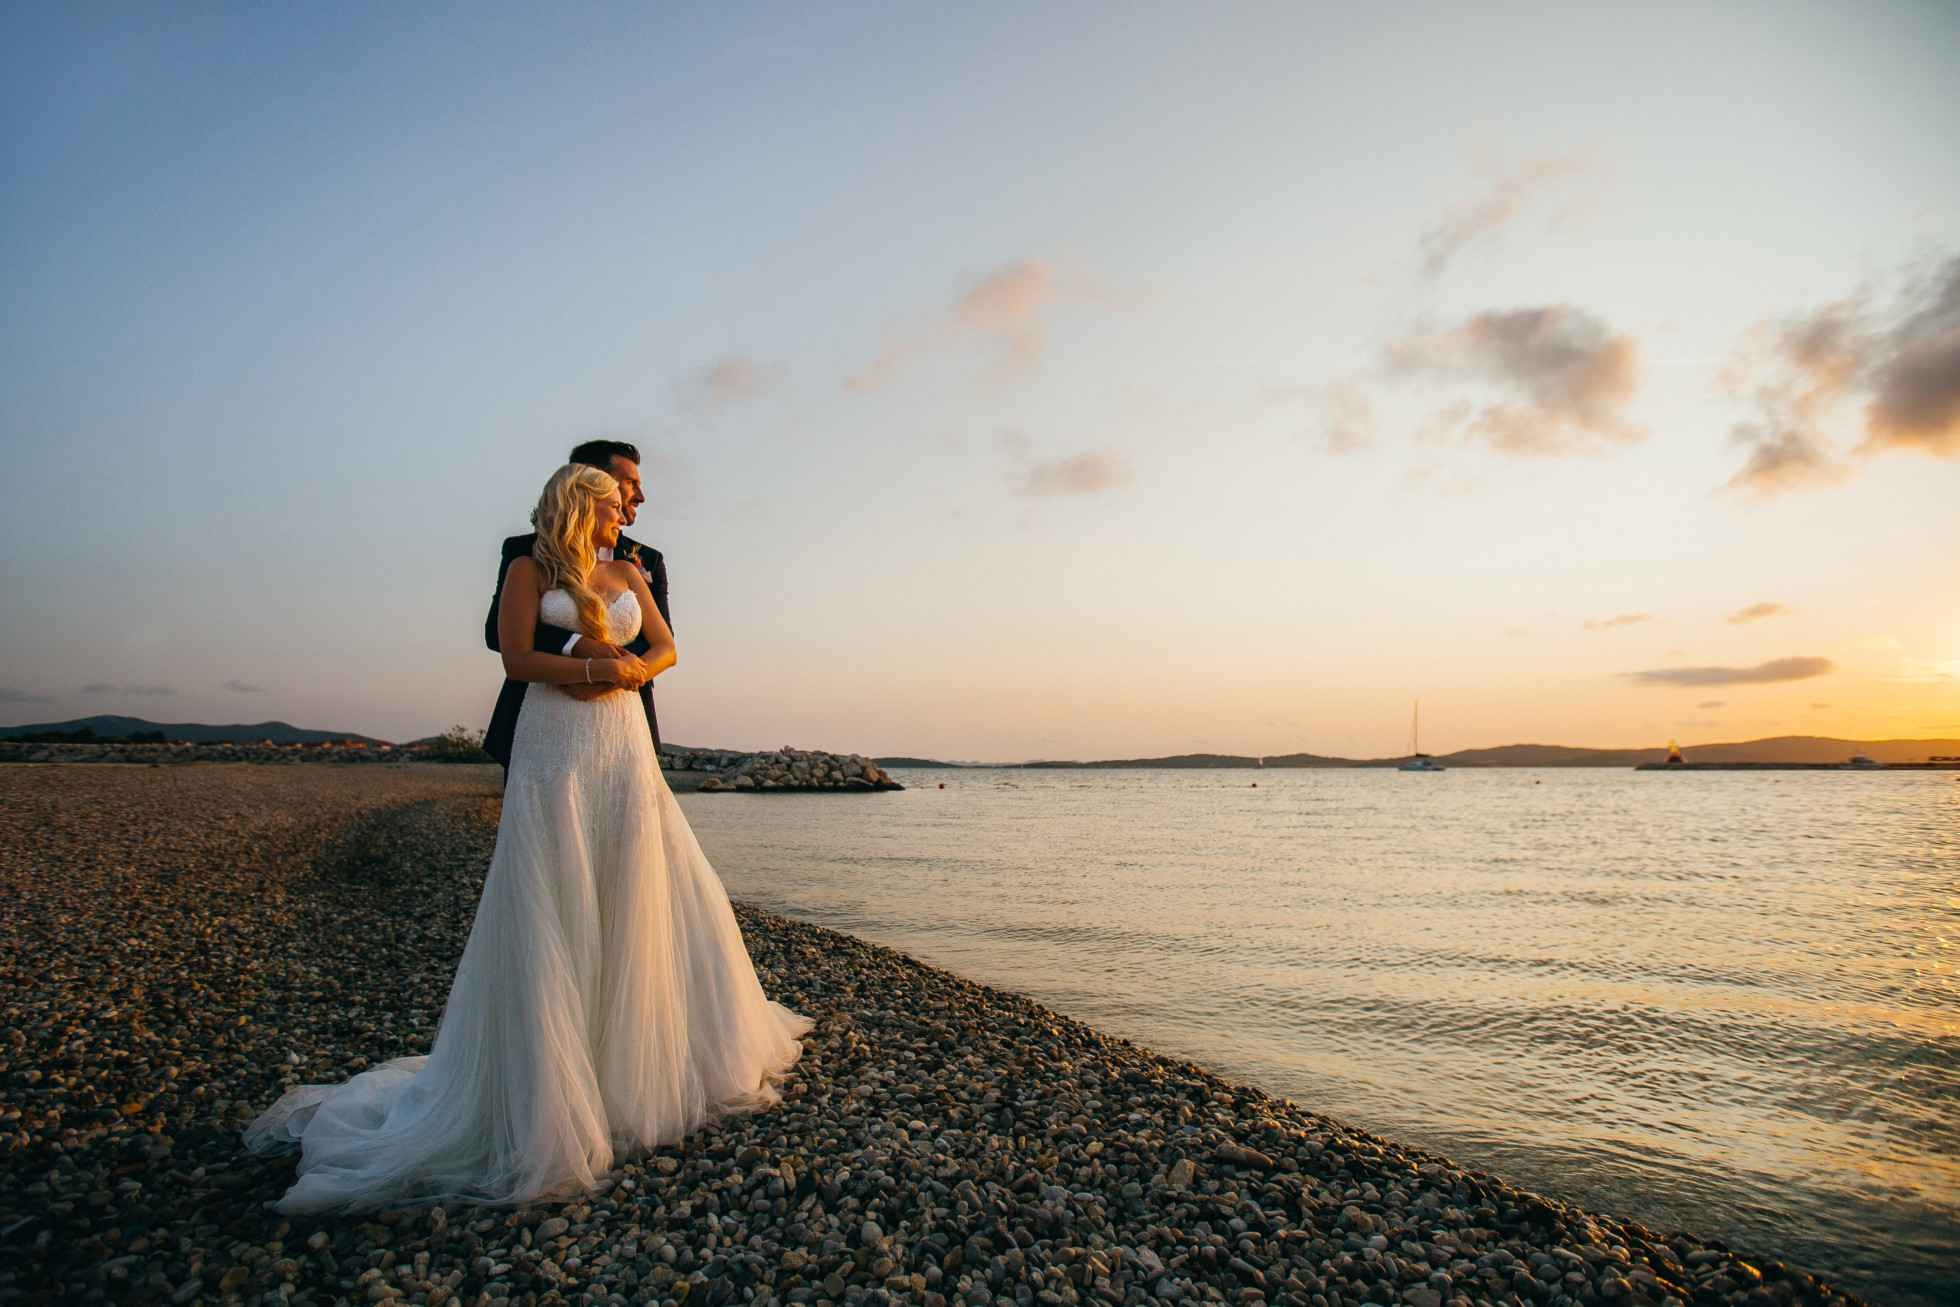 A wedding couple watching the sunset